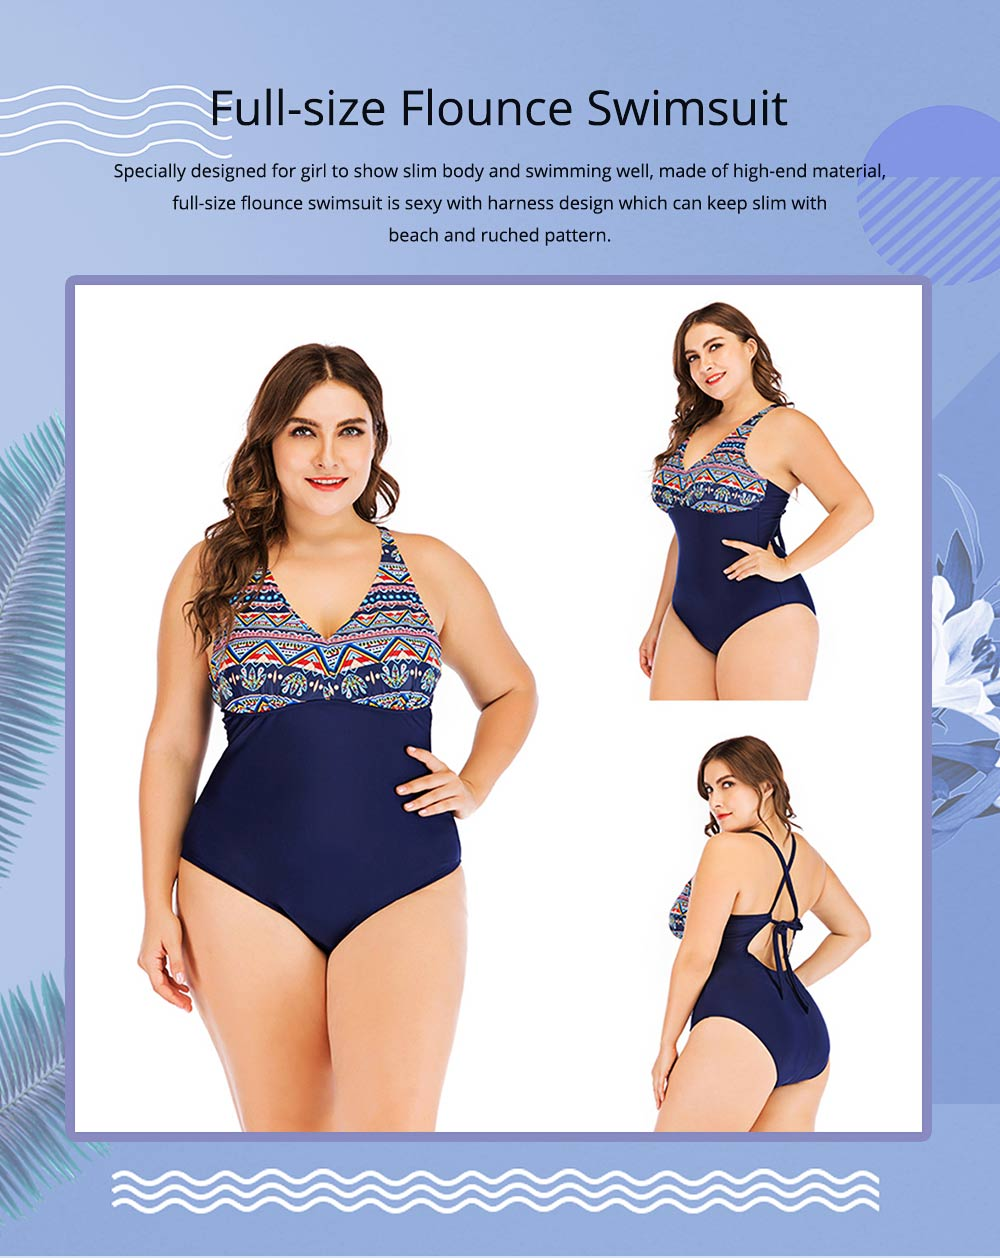 Full-size Flounce Swimsuit Digital Print One-piece Slimming, Straps Slimming Swimsuit with Various Style 0